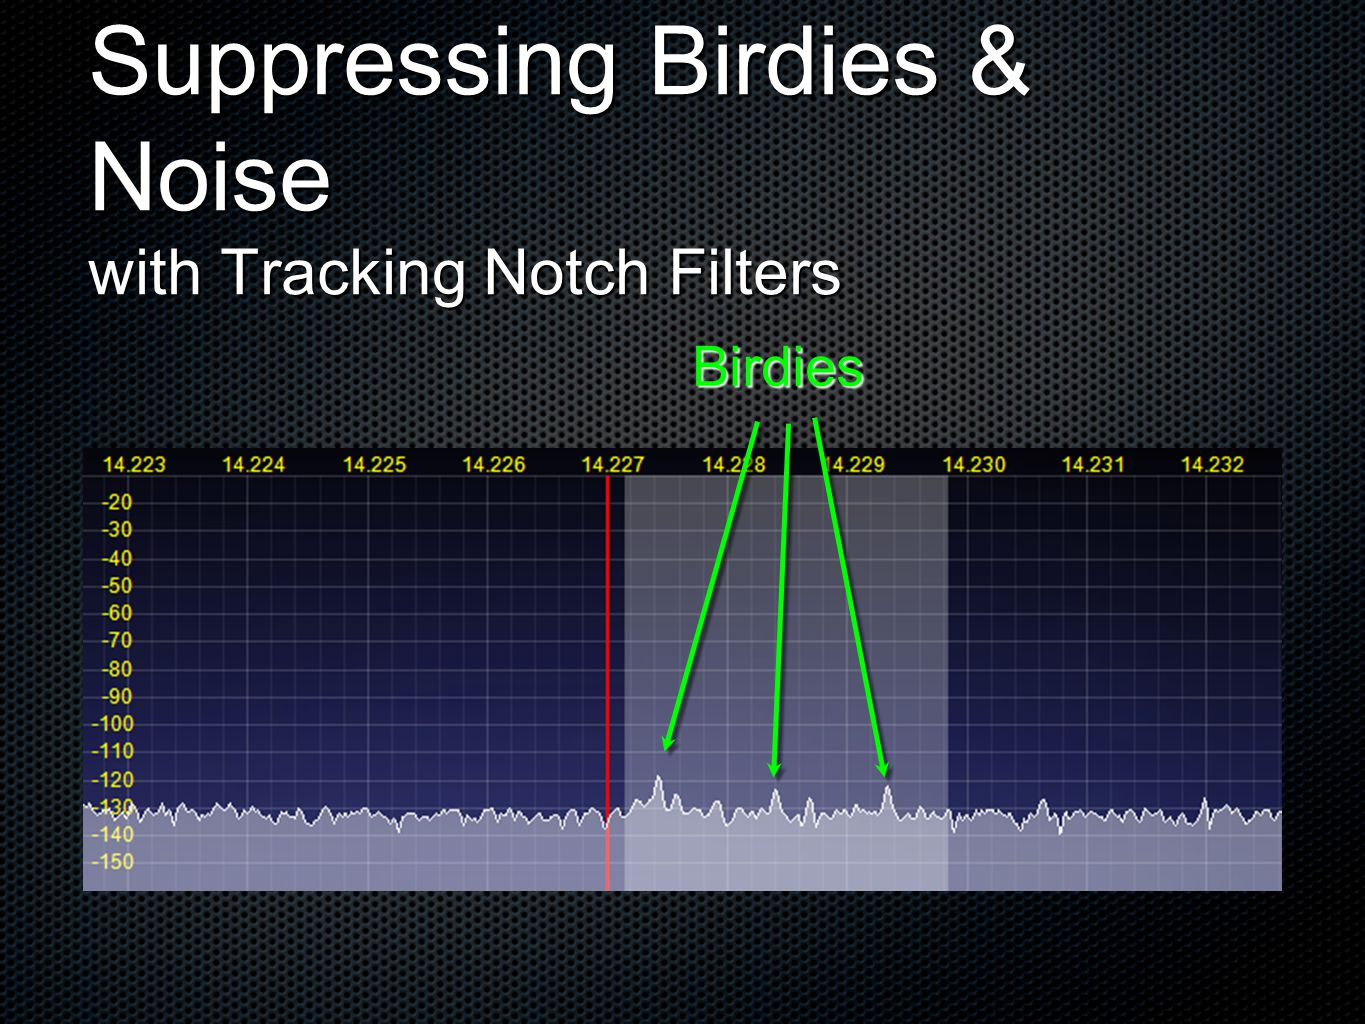 Suppressing Birdies & Noise with Tracking Notch Filters Birdies